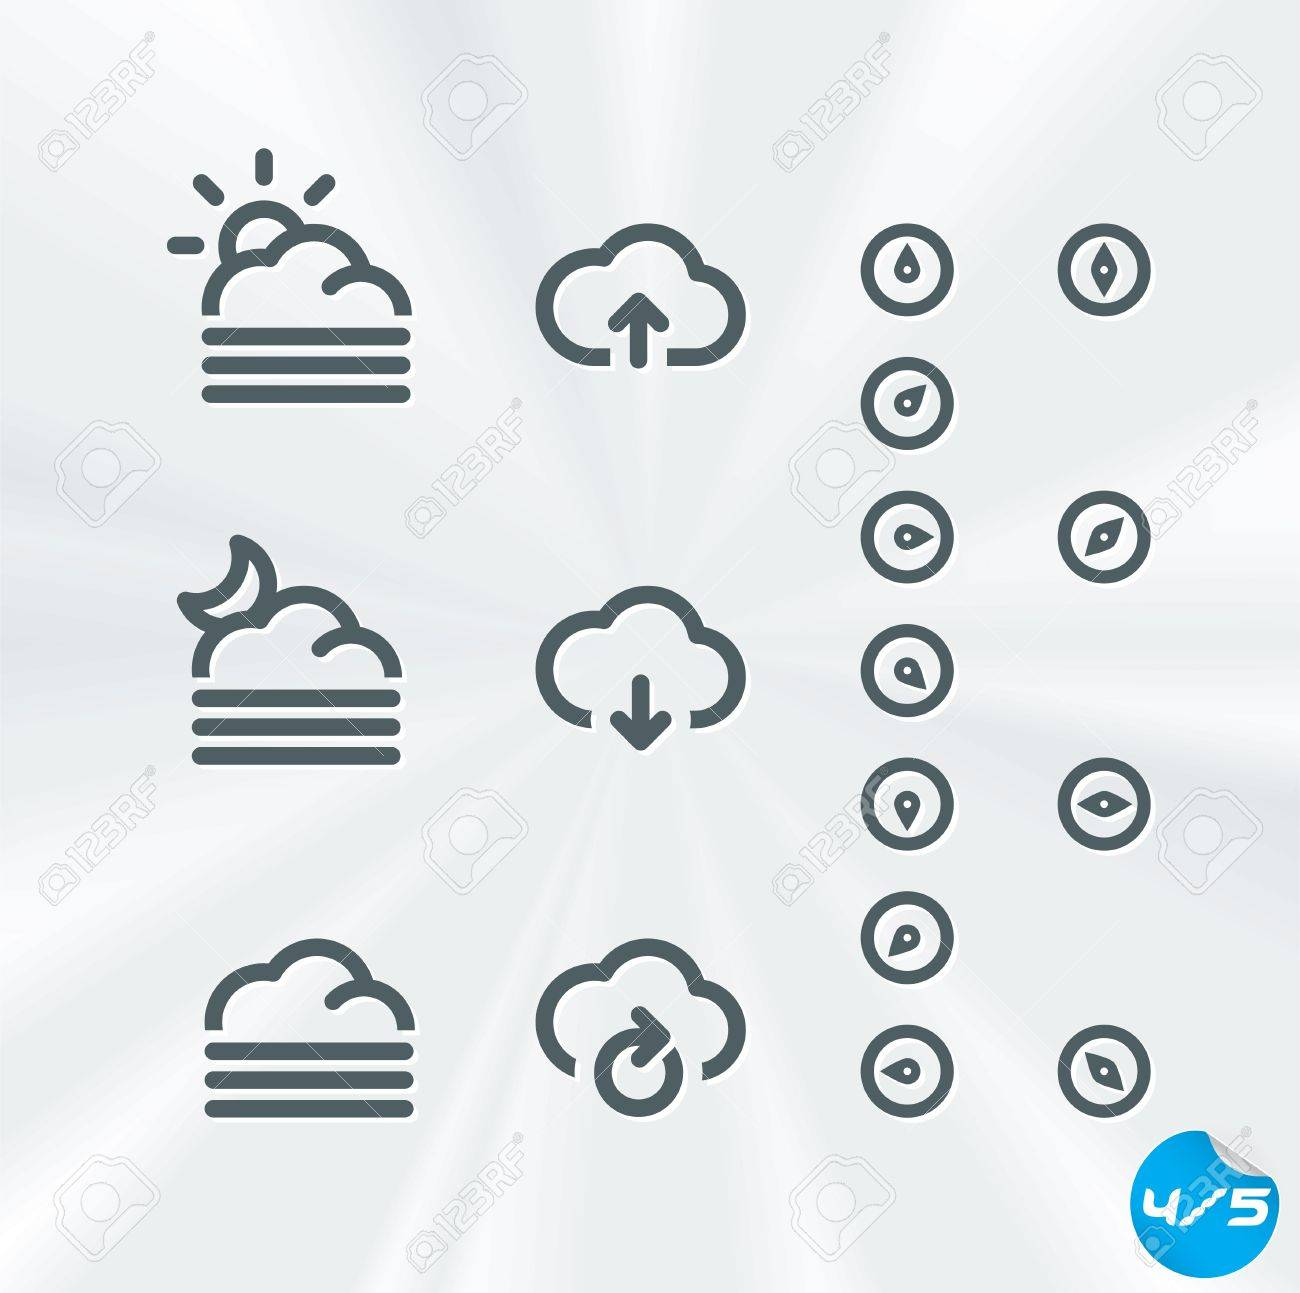 Weather Icons Collection, Button, Sign, Symbol, Emblem, Sticker, Badge, User Interface, Baby, Children, People Stock Vector - 17089660